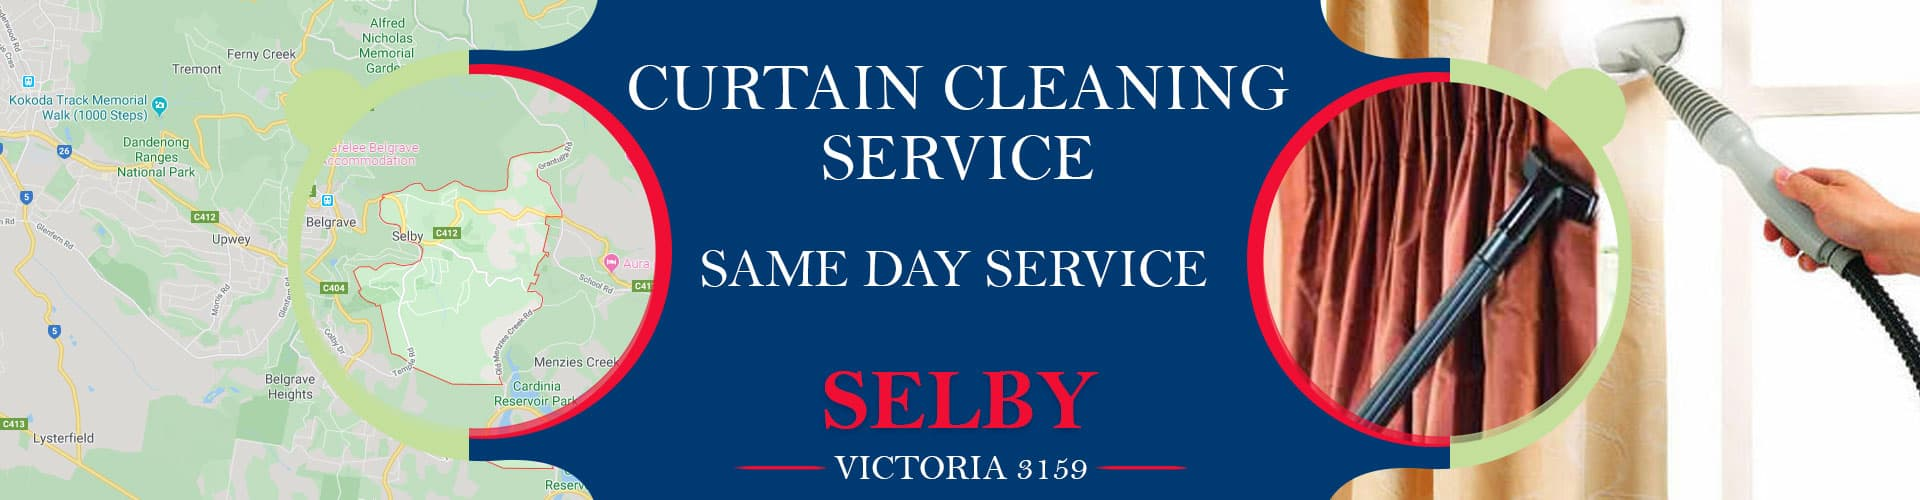 Curtain Cleaning Selby